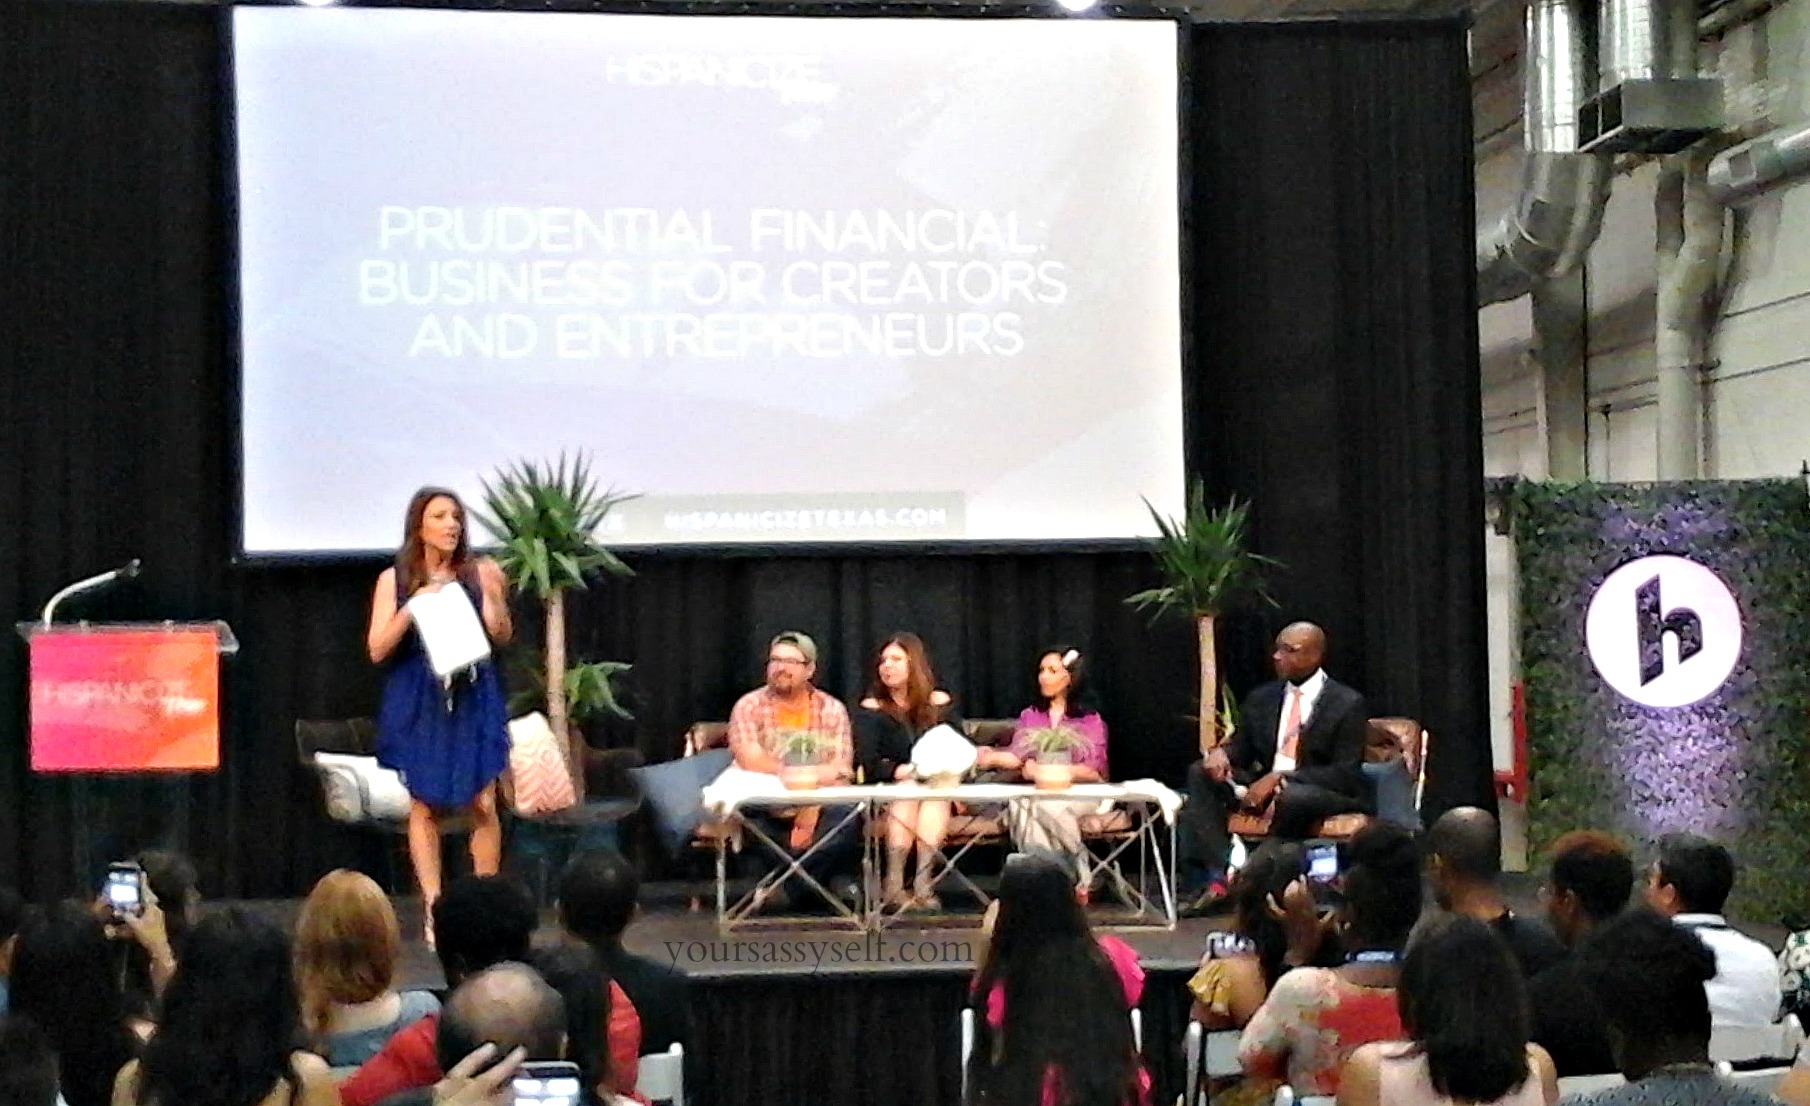 Lili Gil hosting Prudential Panel at HispzTX 2017 - yoursassyself.com